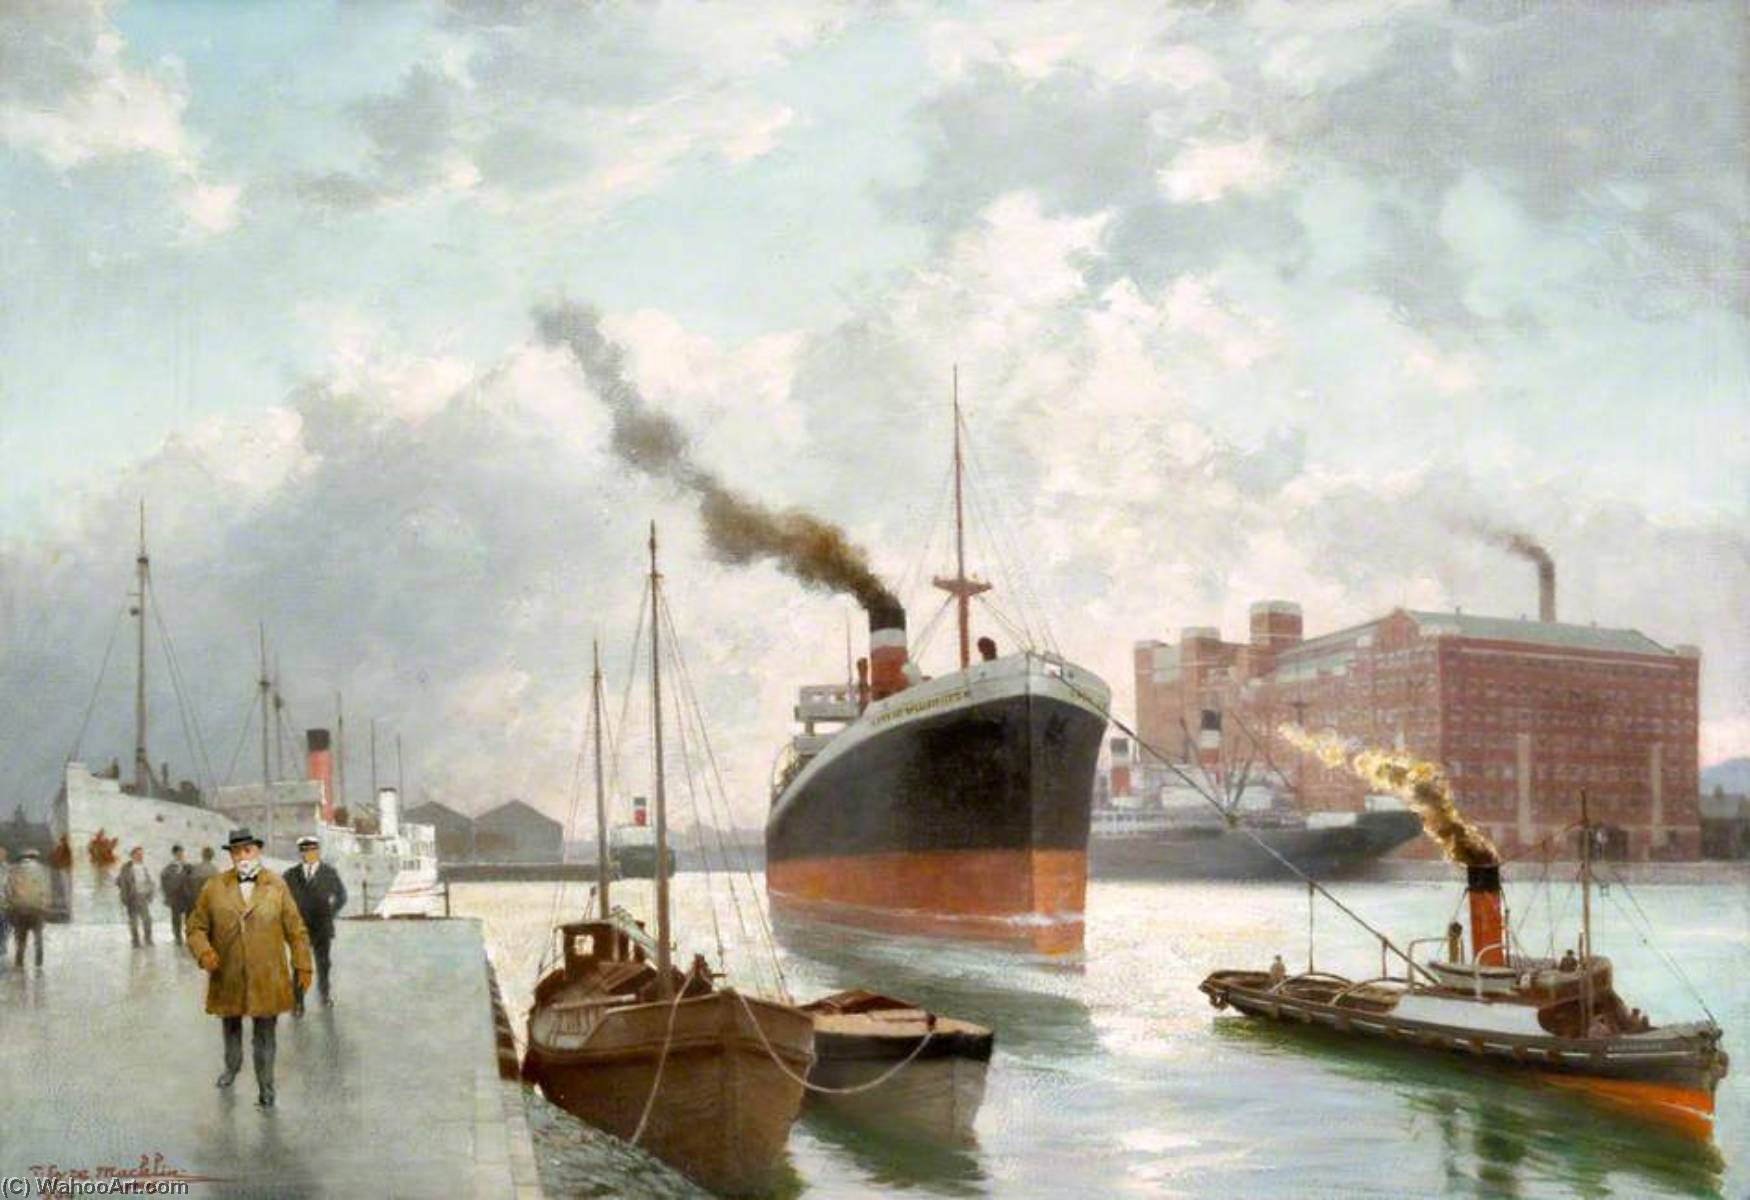 Pollock Dock, The Steamer `City of Wellington` Being Tugged, 1934 by Thomas Eyre Macklin | Famous Paintings Reproductions | WahooArt.com